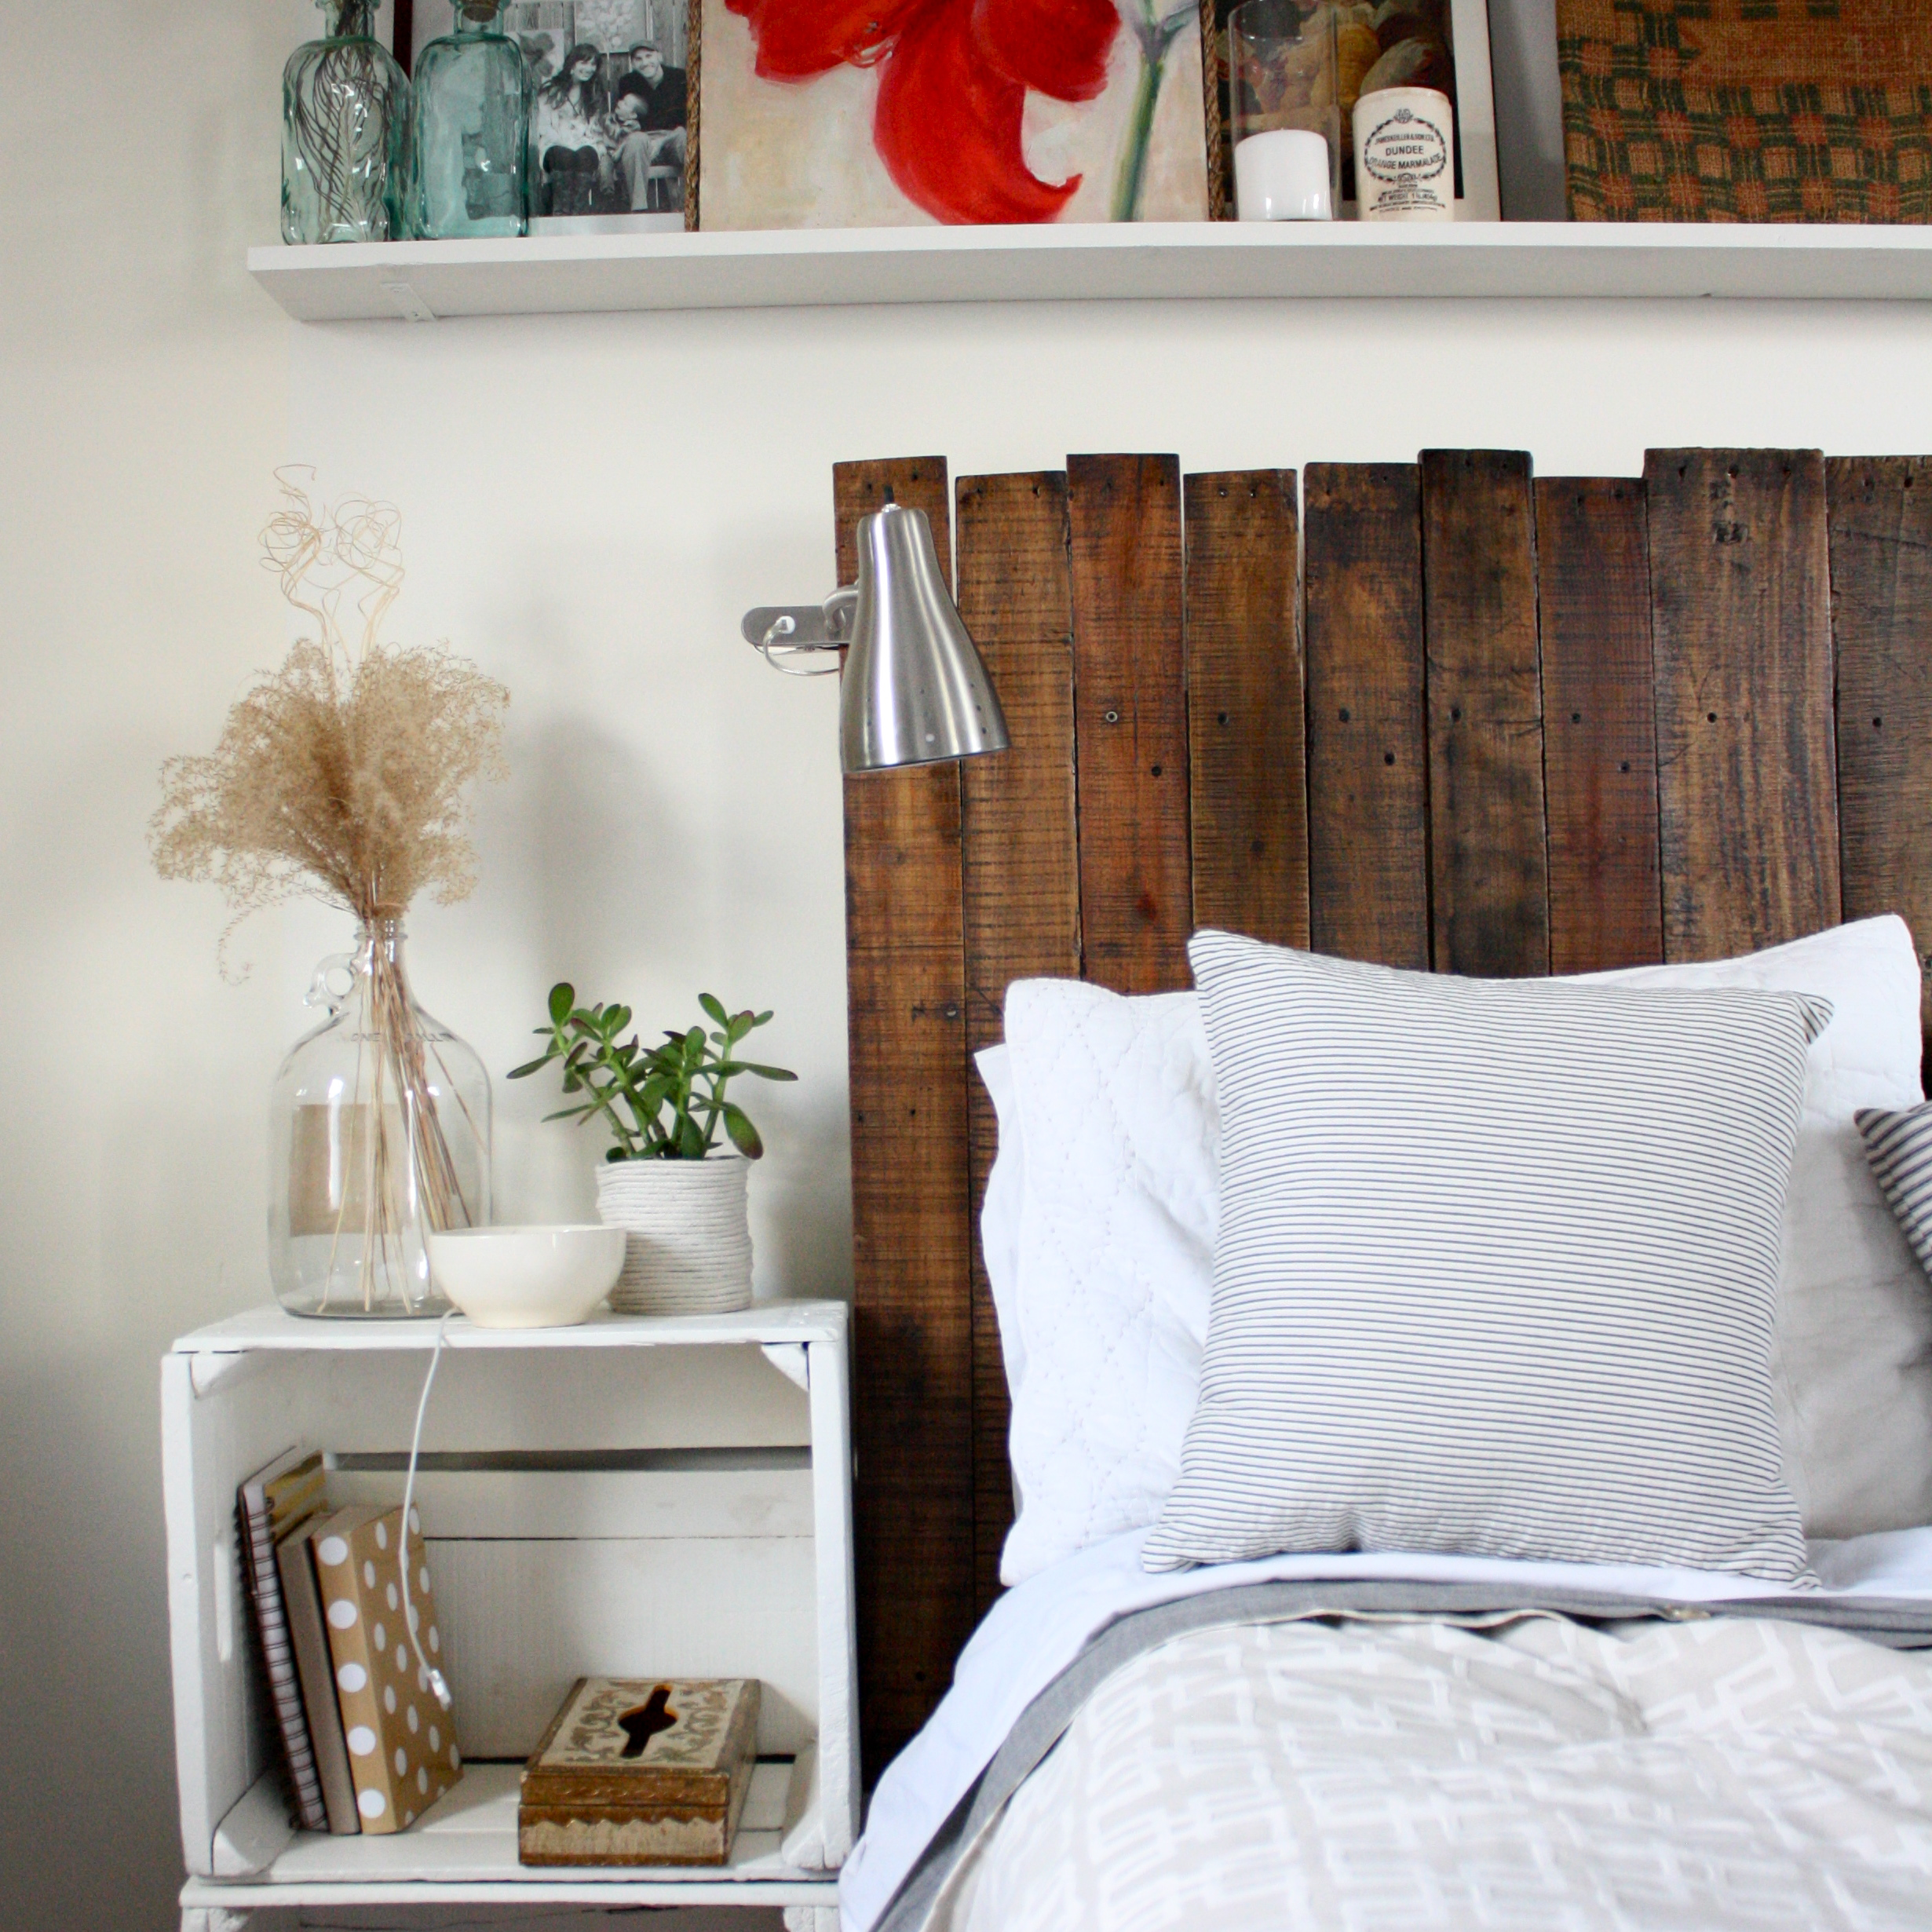 Diy pallet headboard rice designs for Headboard patterns